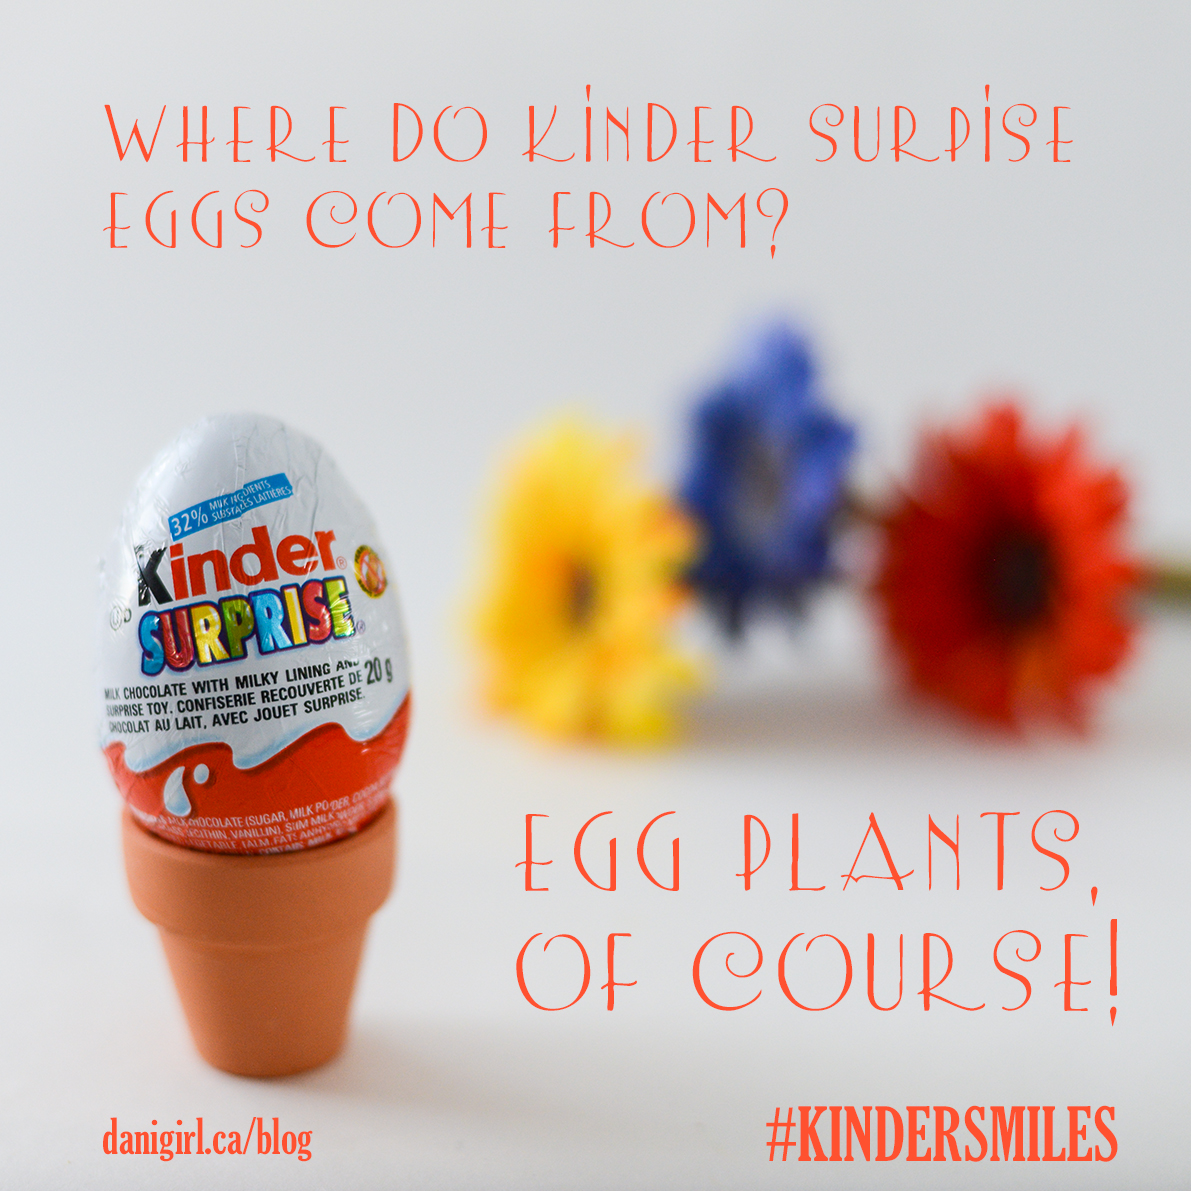 Image: Where do Kinder eggs from from? Eggplants, of course